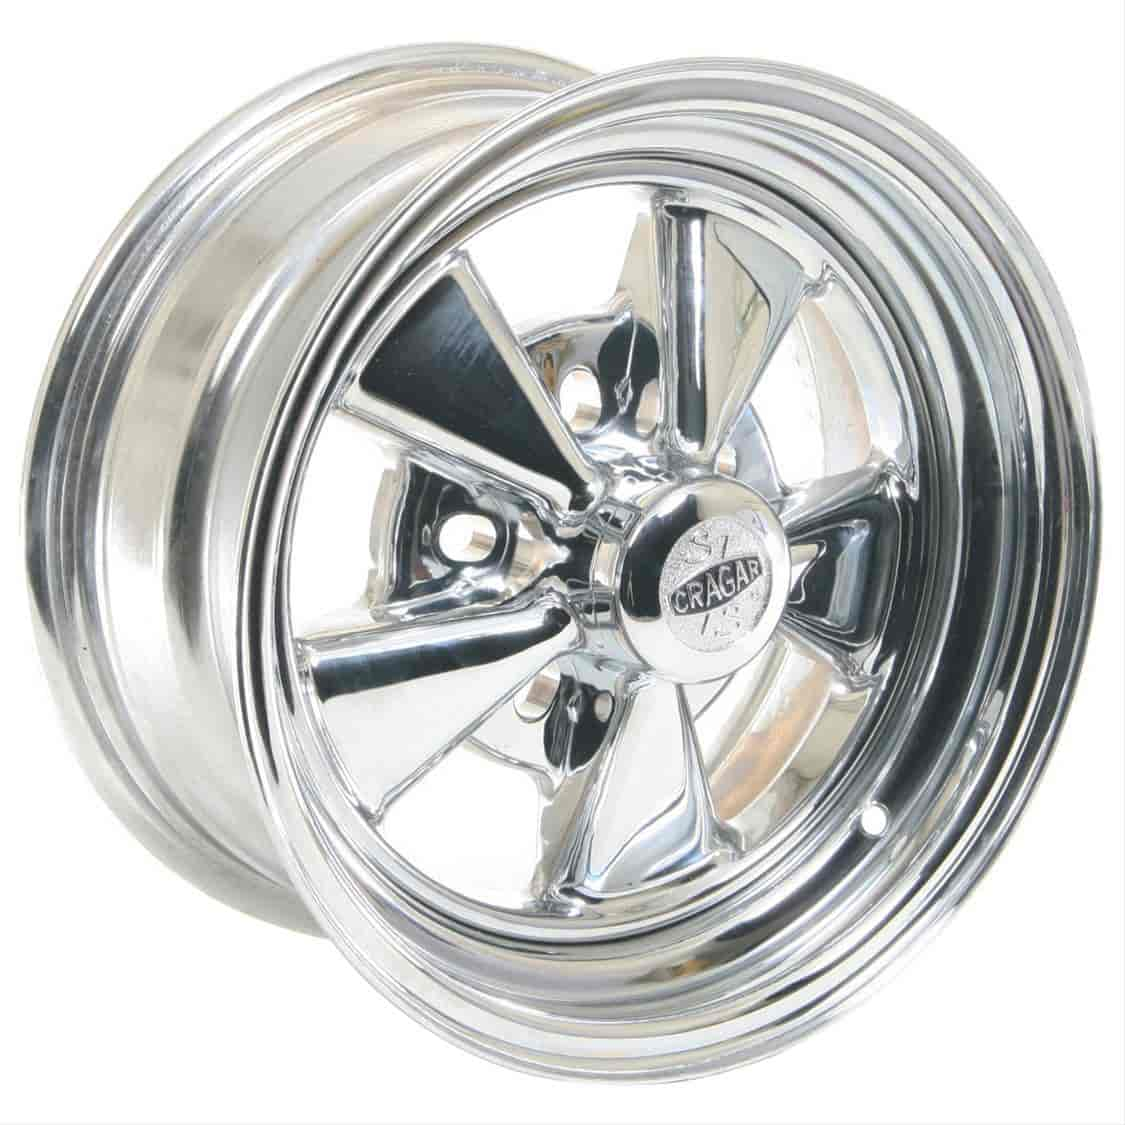 Cragar 61717 - Cragar 08/61 Series S/S Super Sport Wheels